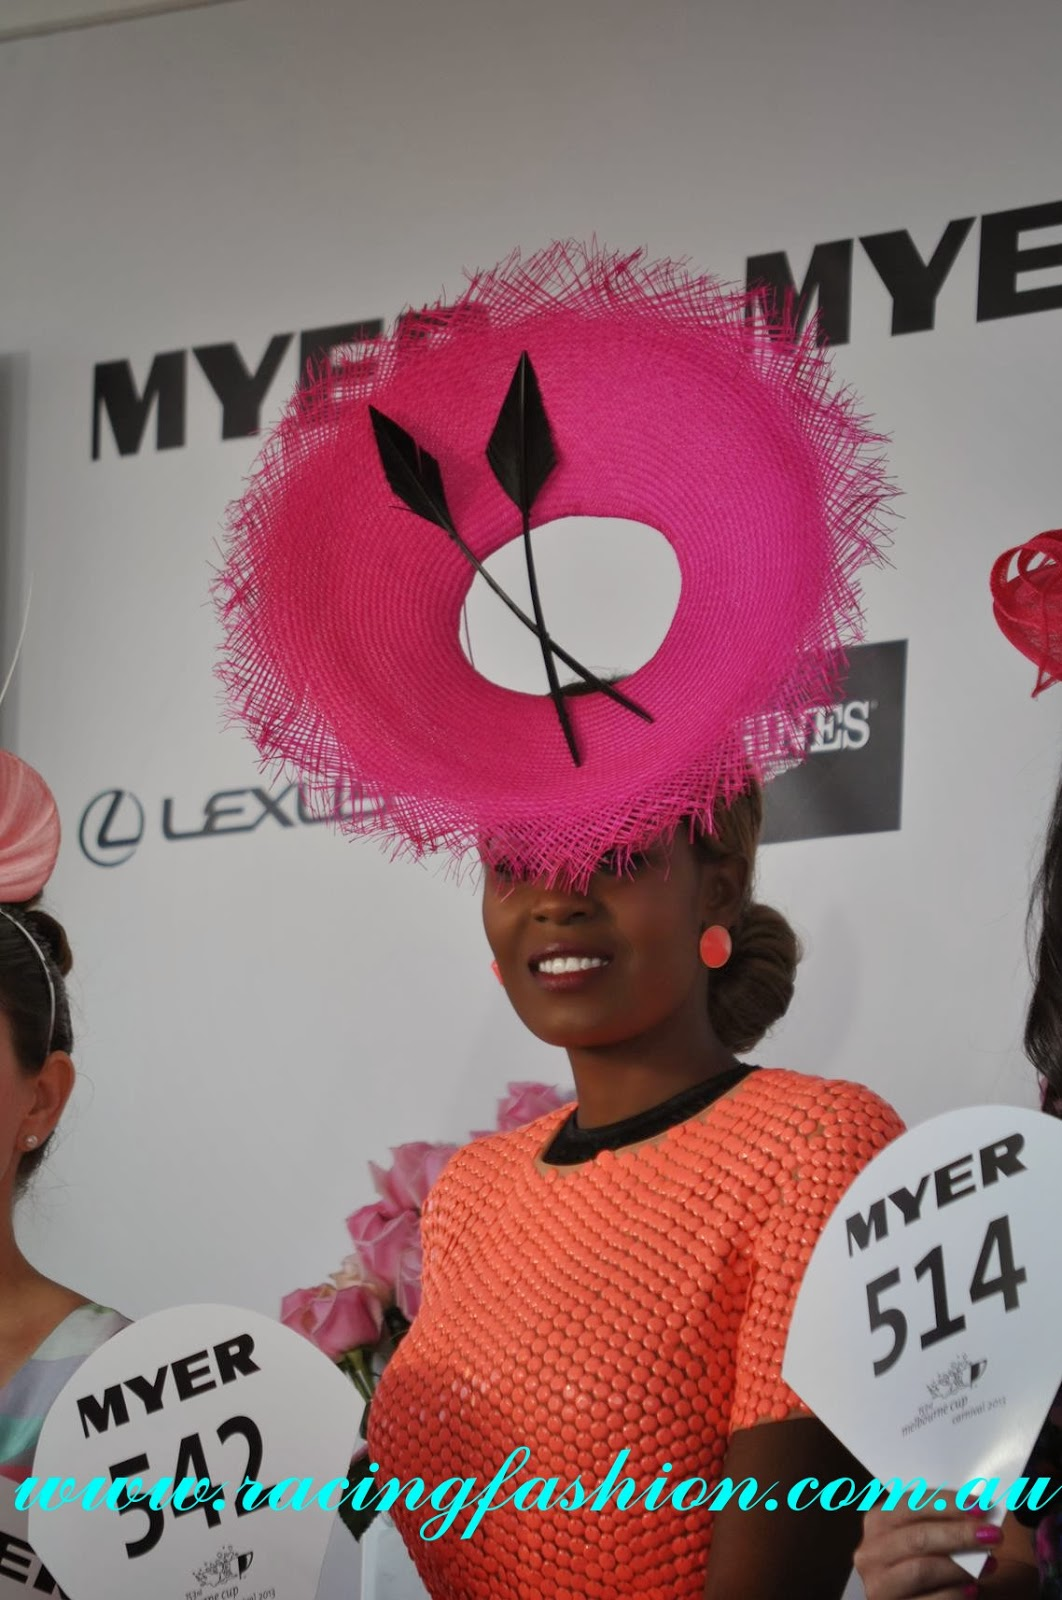 Melbourne Cup 2018 Fashion Tips, Dresses Hats - Punters 21